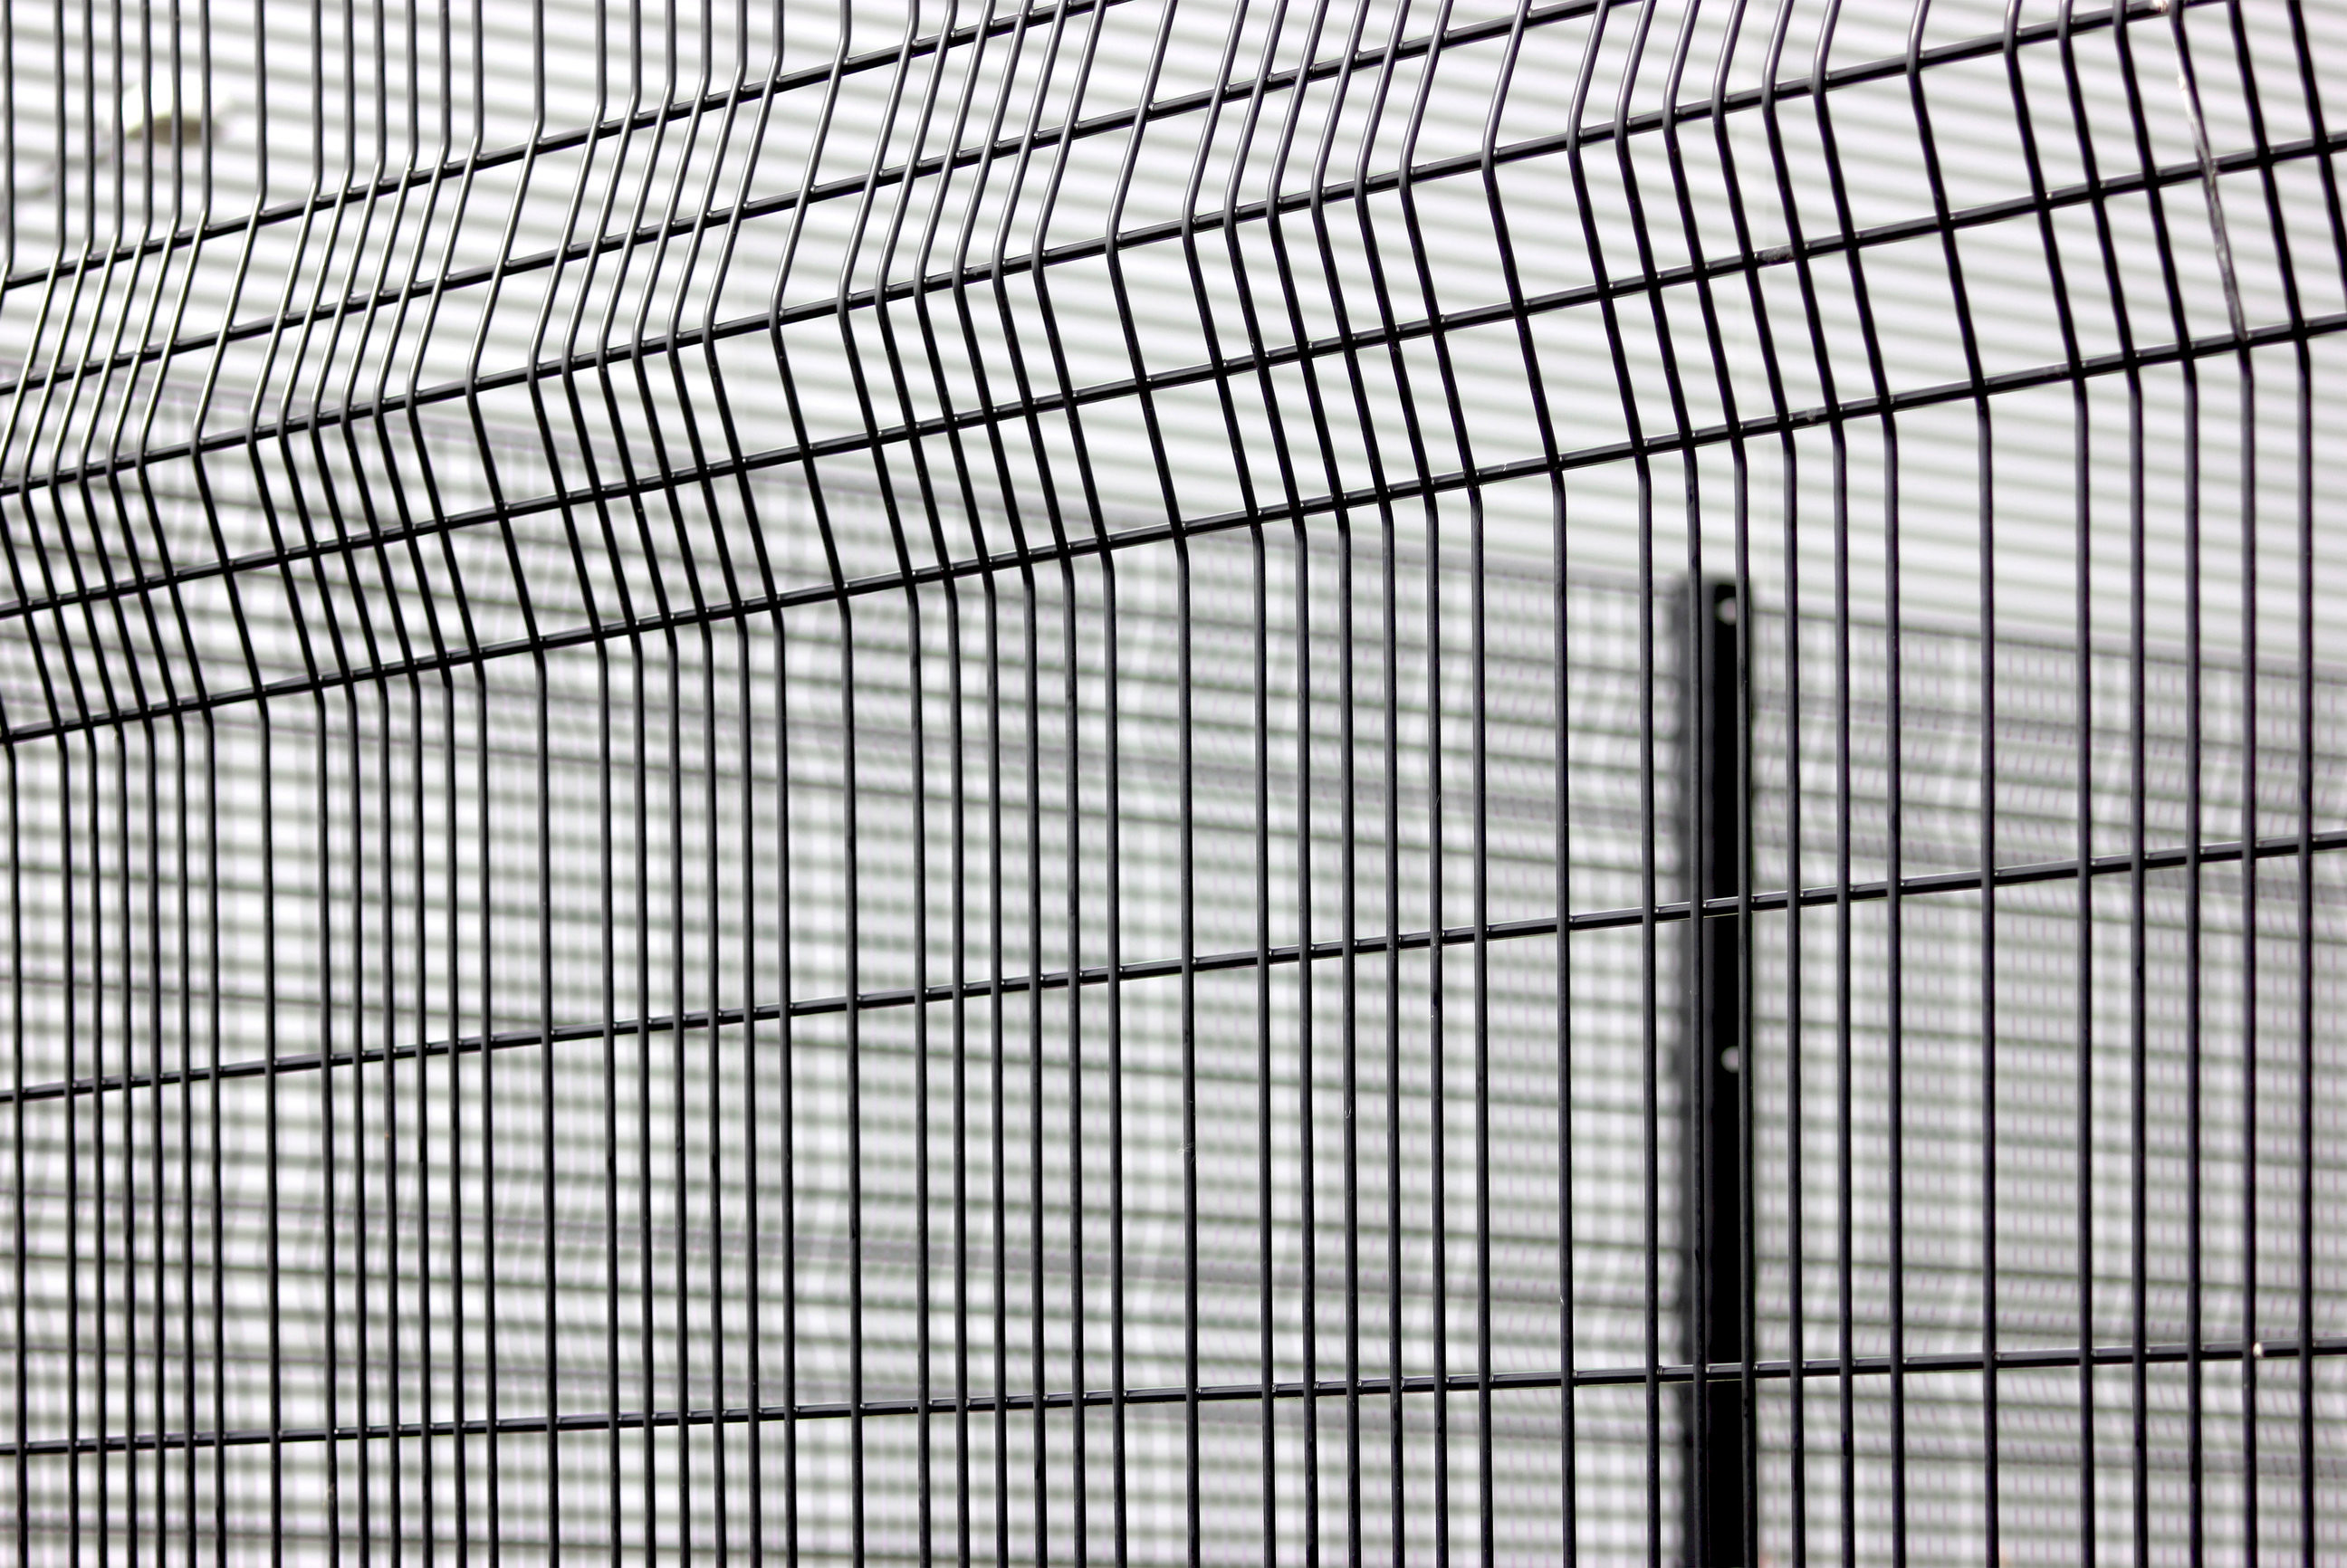 358 prison security fence,358 Fence 76.2 x 12.7mm wire mesh fence ...